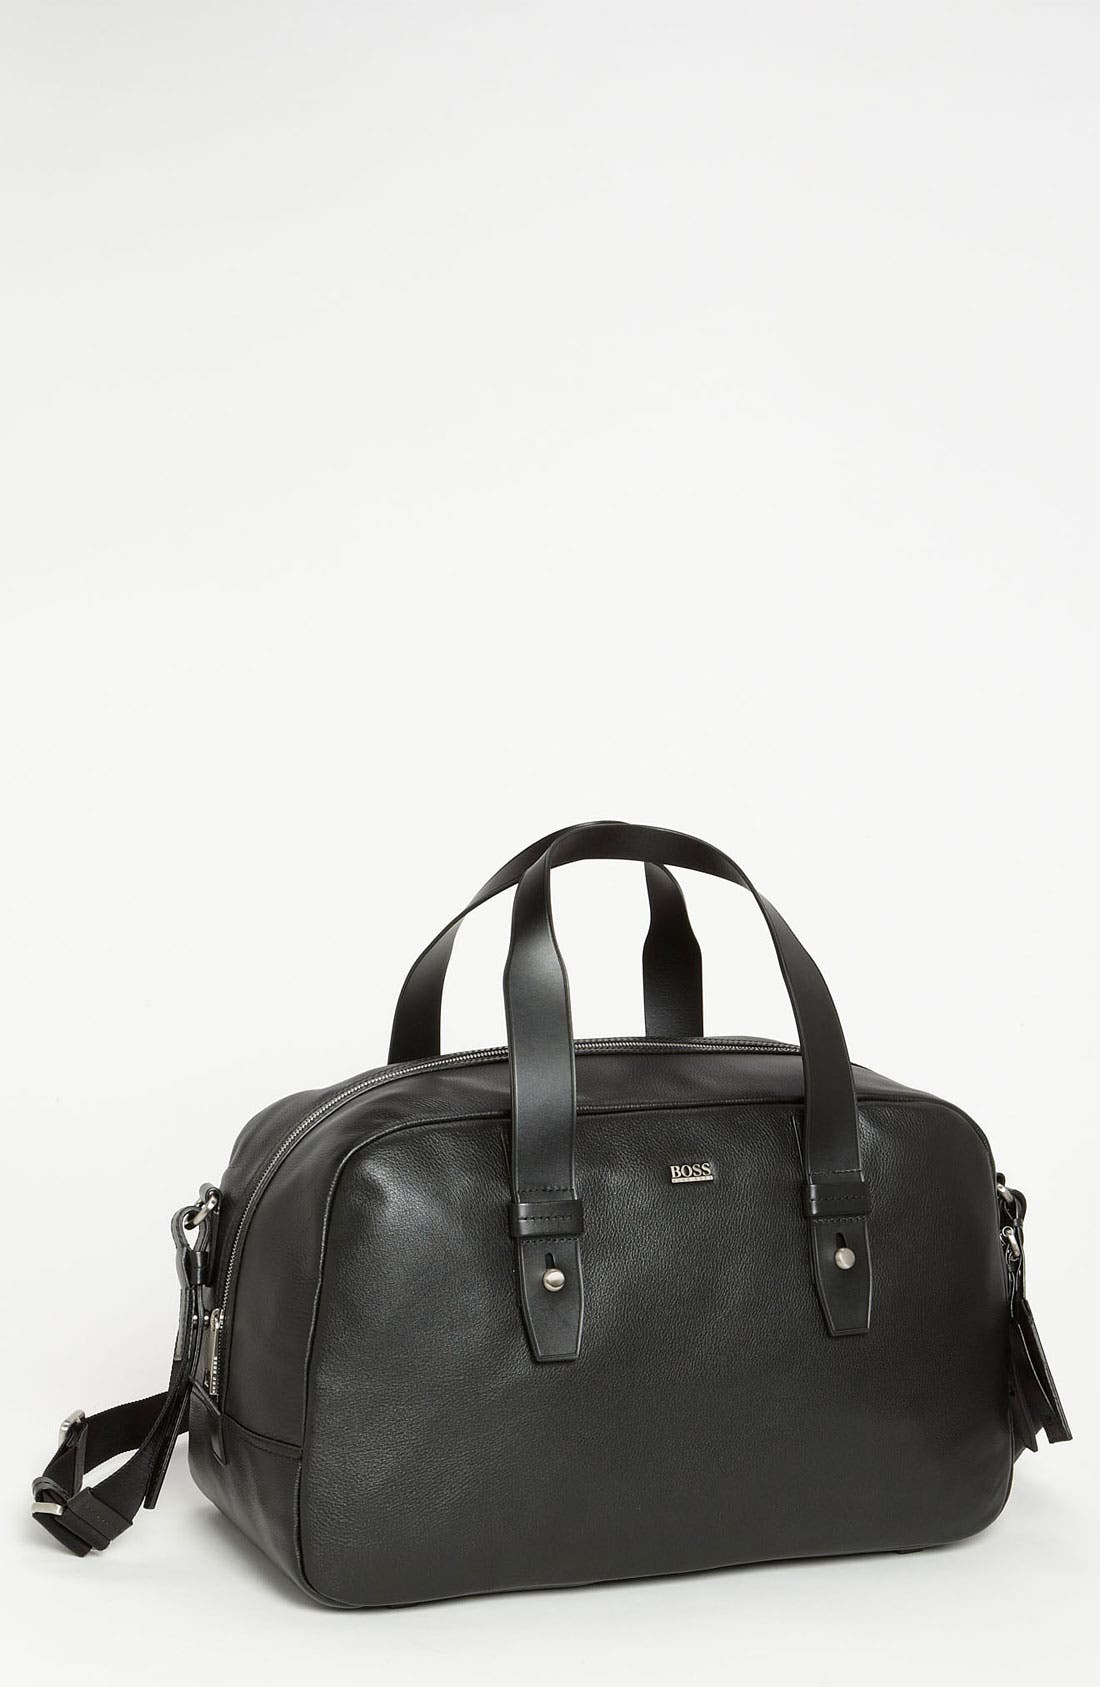 Main Image - BOSS Black 'Becor' Duffel Bag